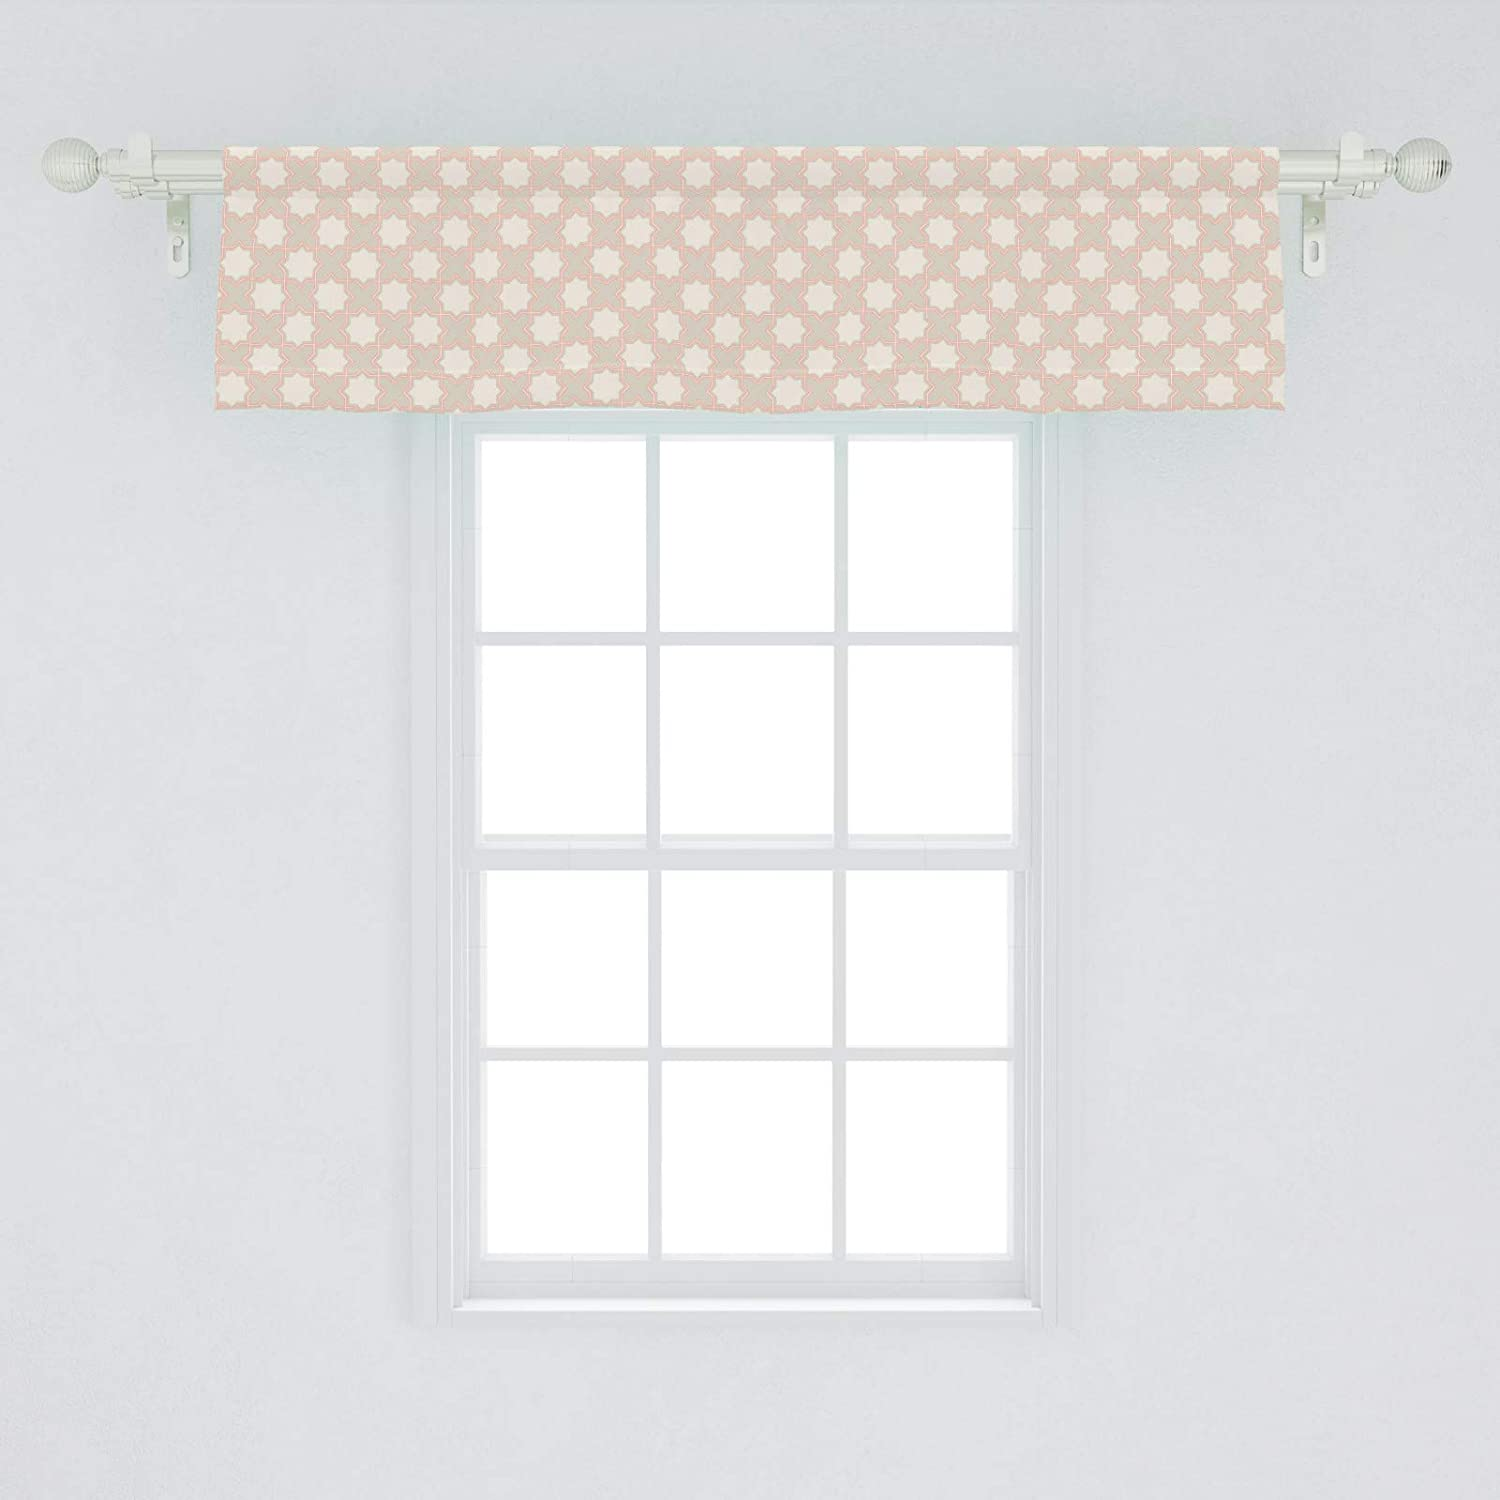 Lunarable Orient Window Valance, Illustration of Repetitive Oriental Star Like Ornament in Beige Tones, Curtain Valance for Kitchen Bedroom Decor with Rod Pocket, 54